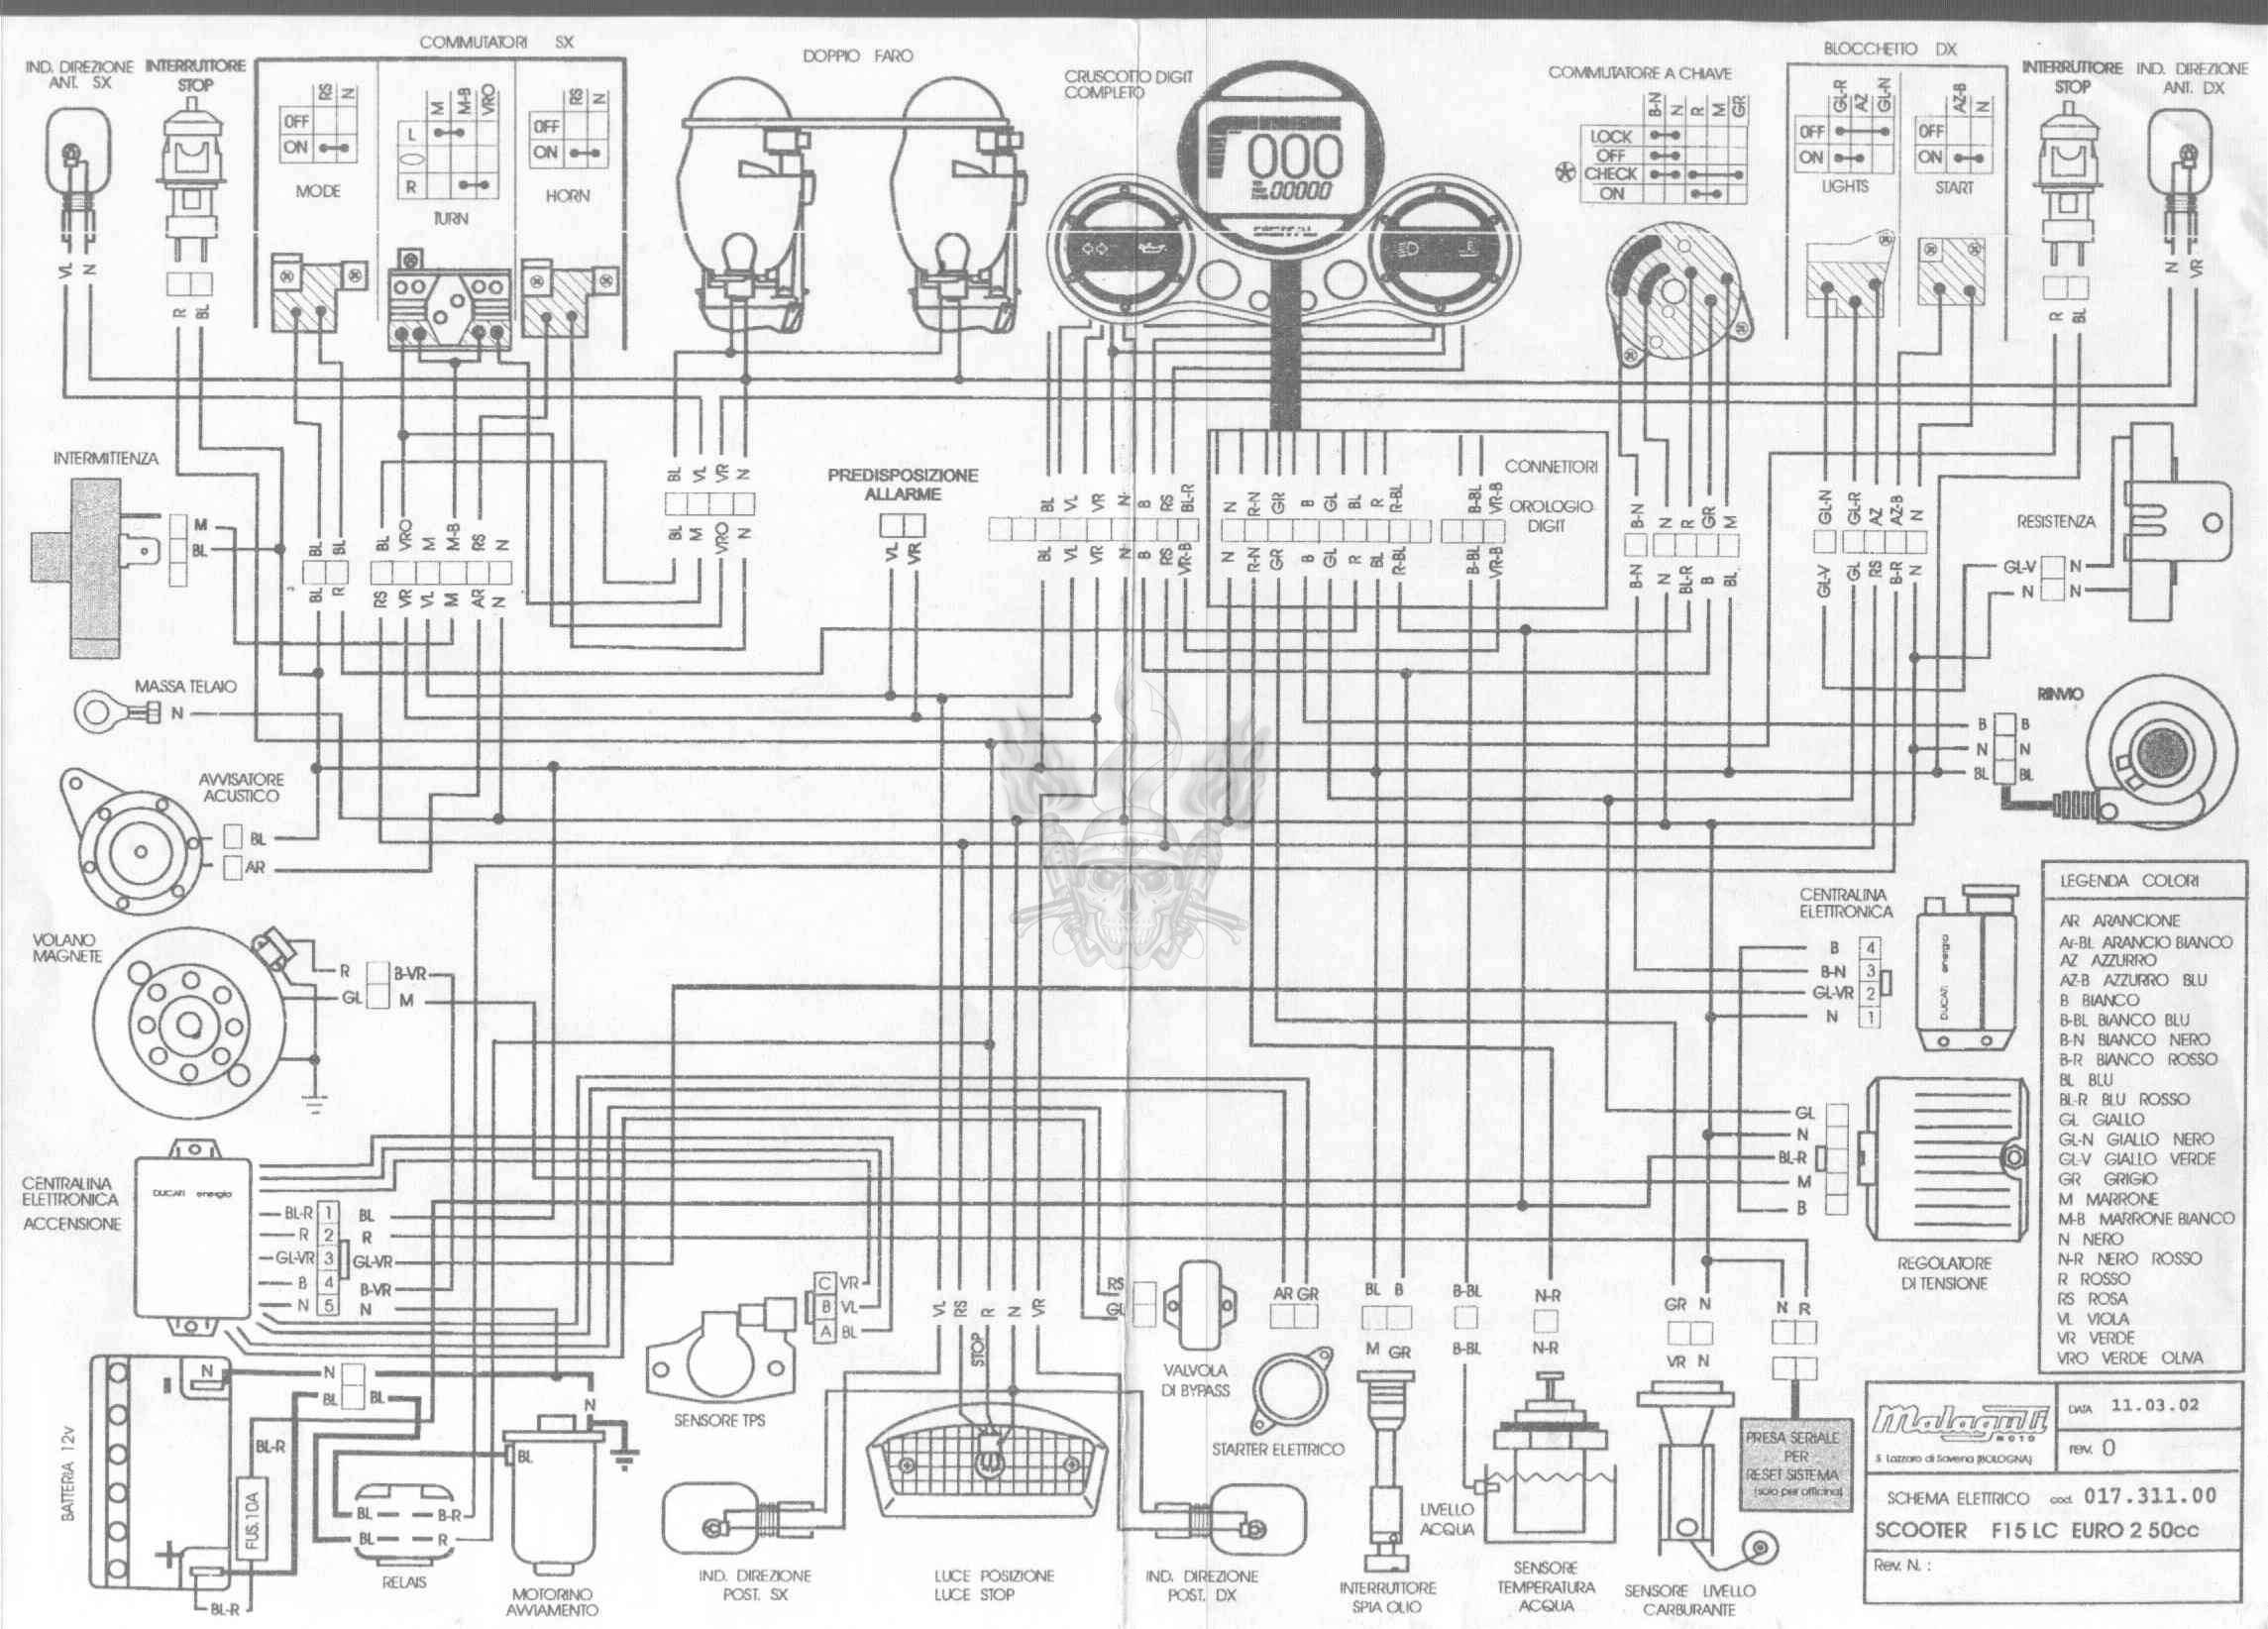 Kymco Mongoose 250 Wiring Diagram Explained Diagrams Ktm Freeride 250r Images Scooter Parts Trusted 300